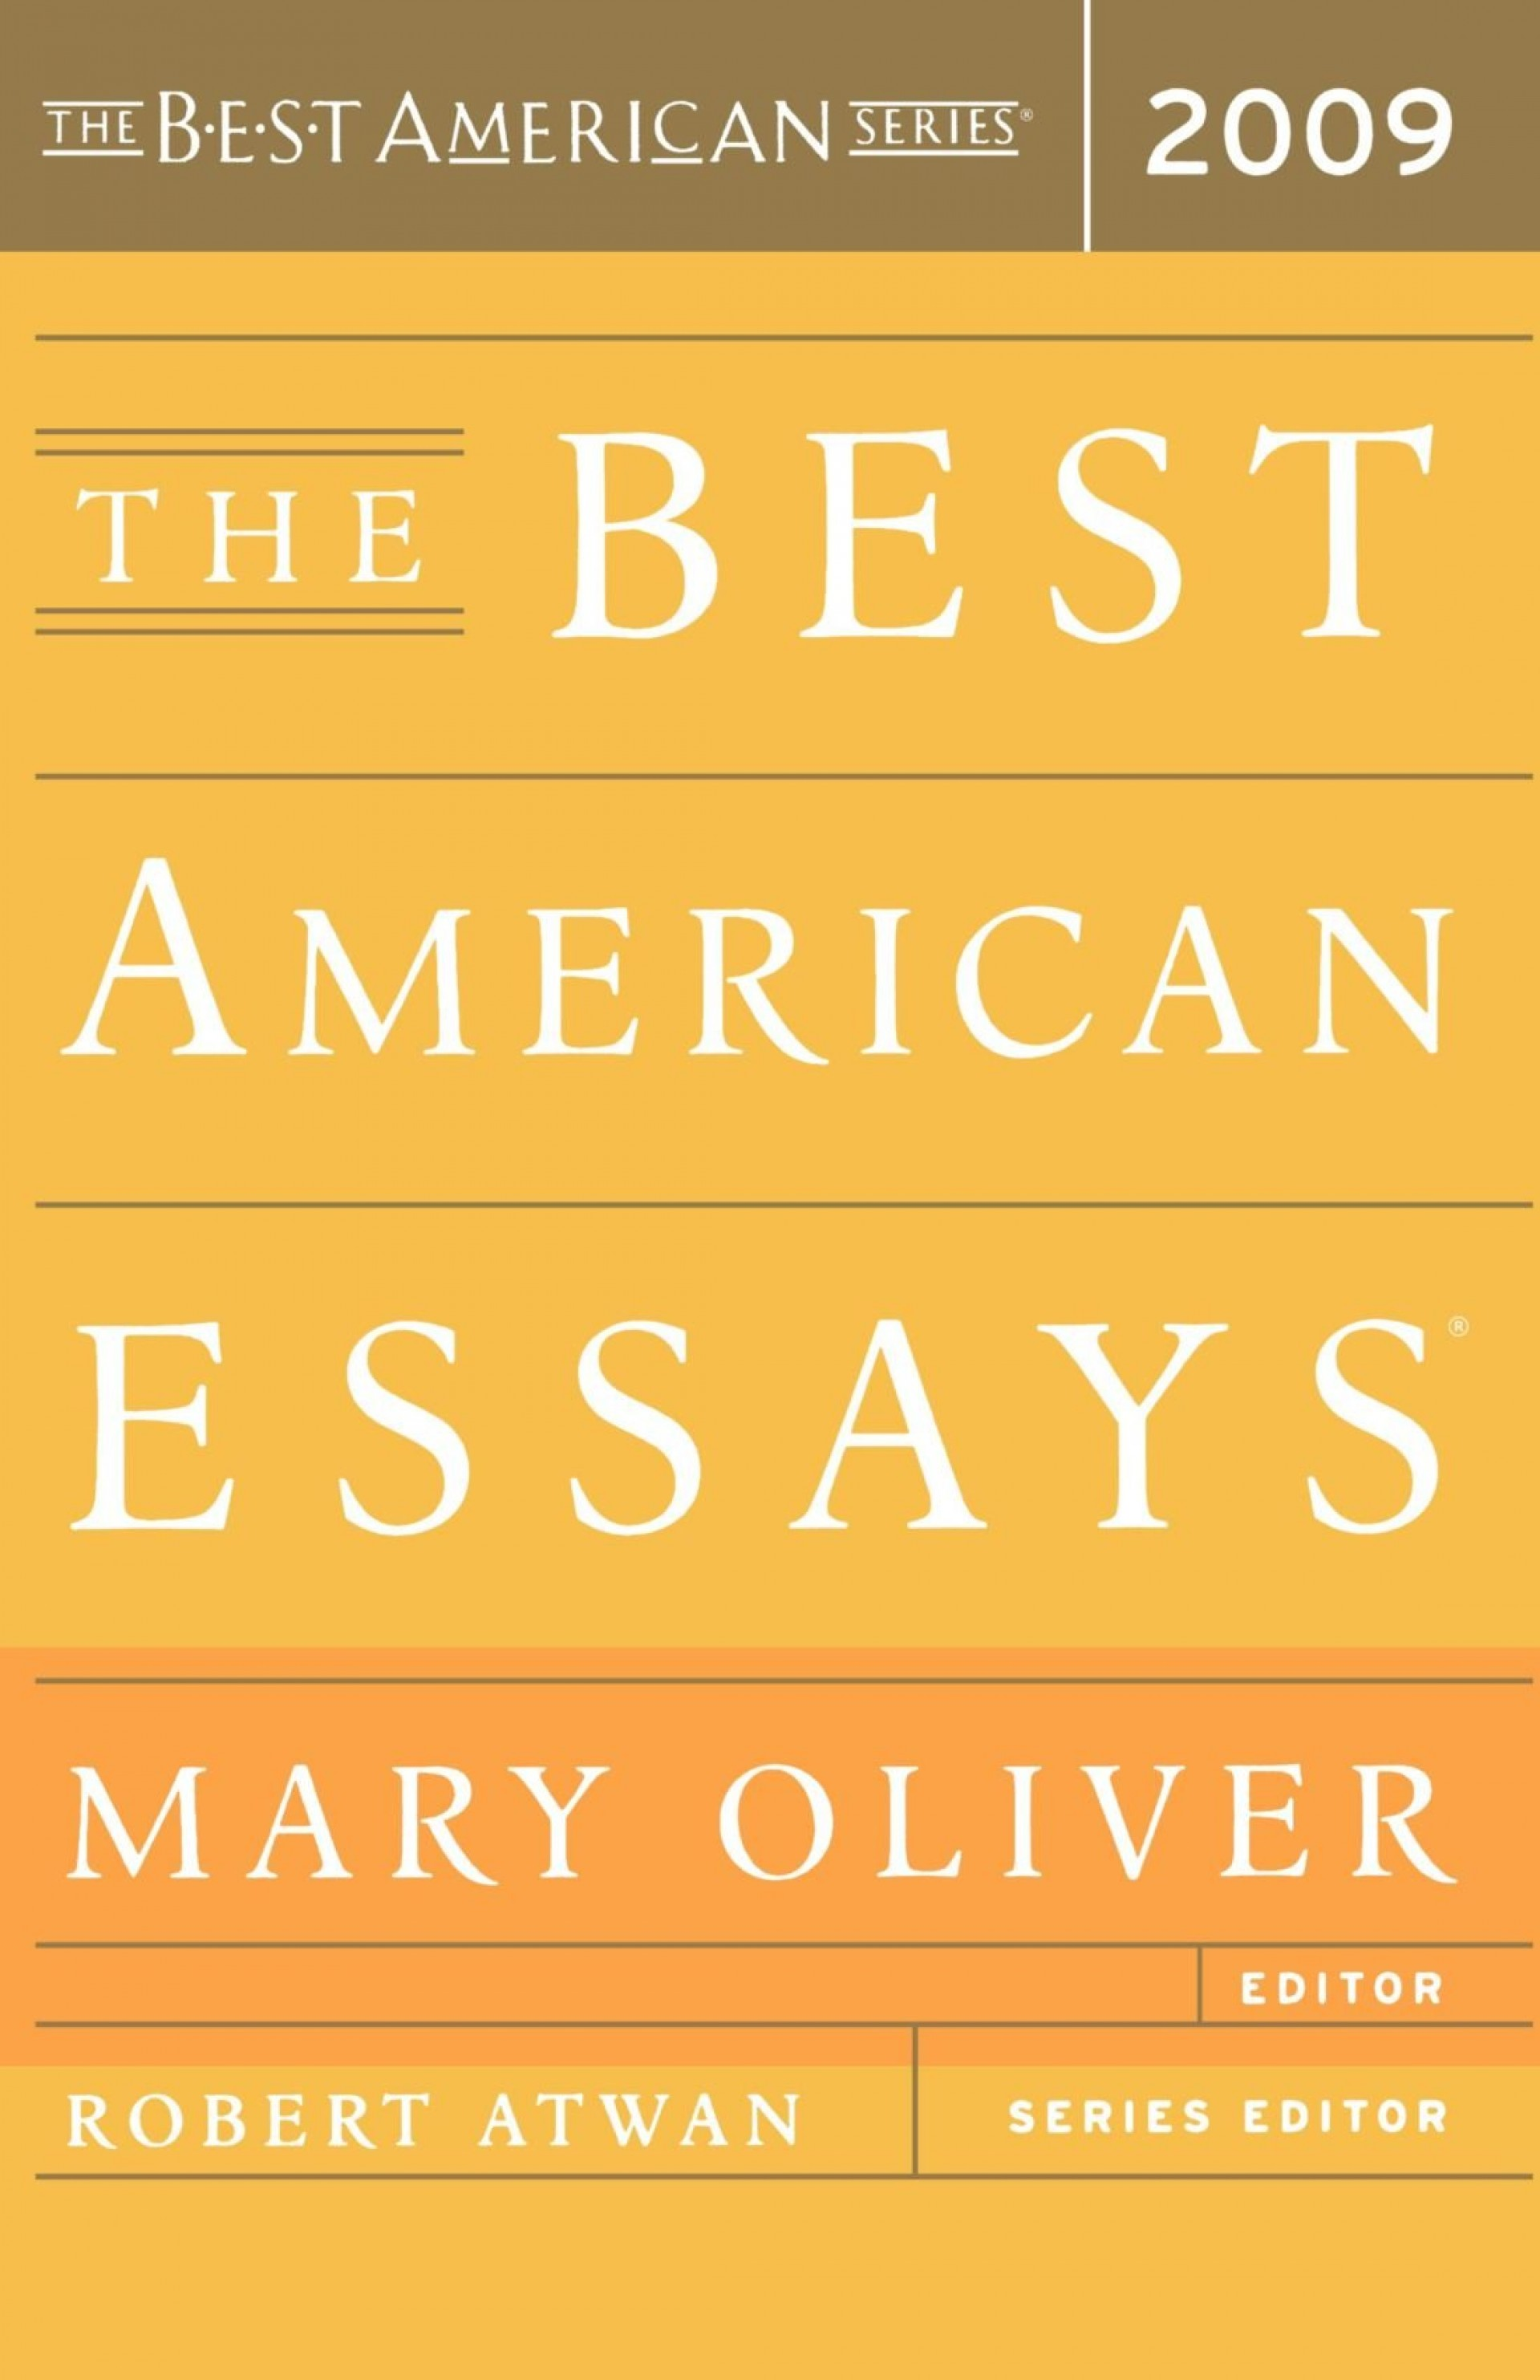 009 617qb5slhfl Essay Example Best American Striking Essays 2017 Table Of Contents The Century Pdf 1920